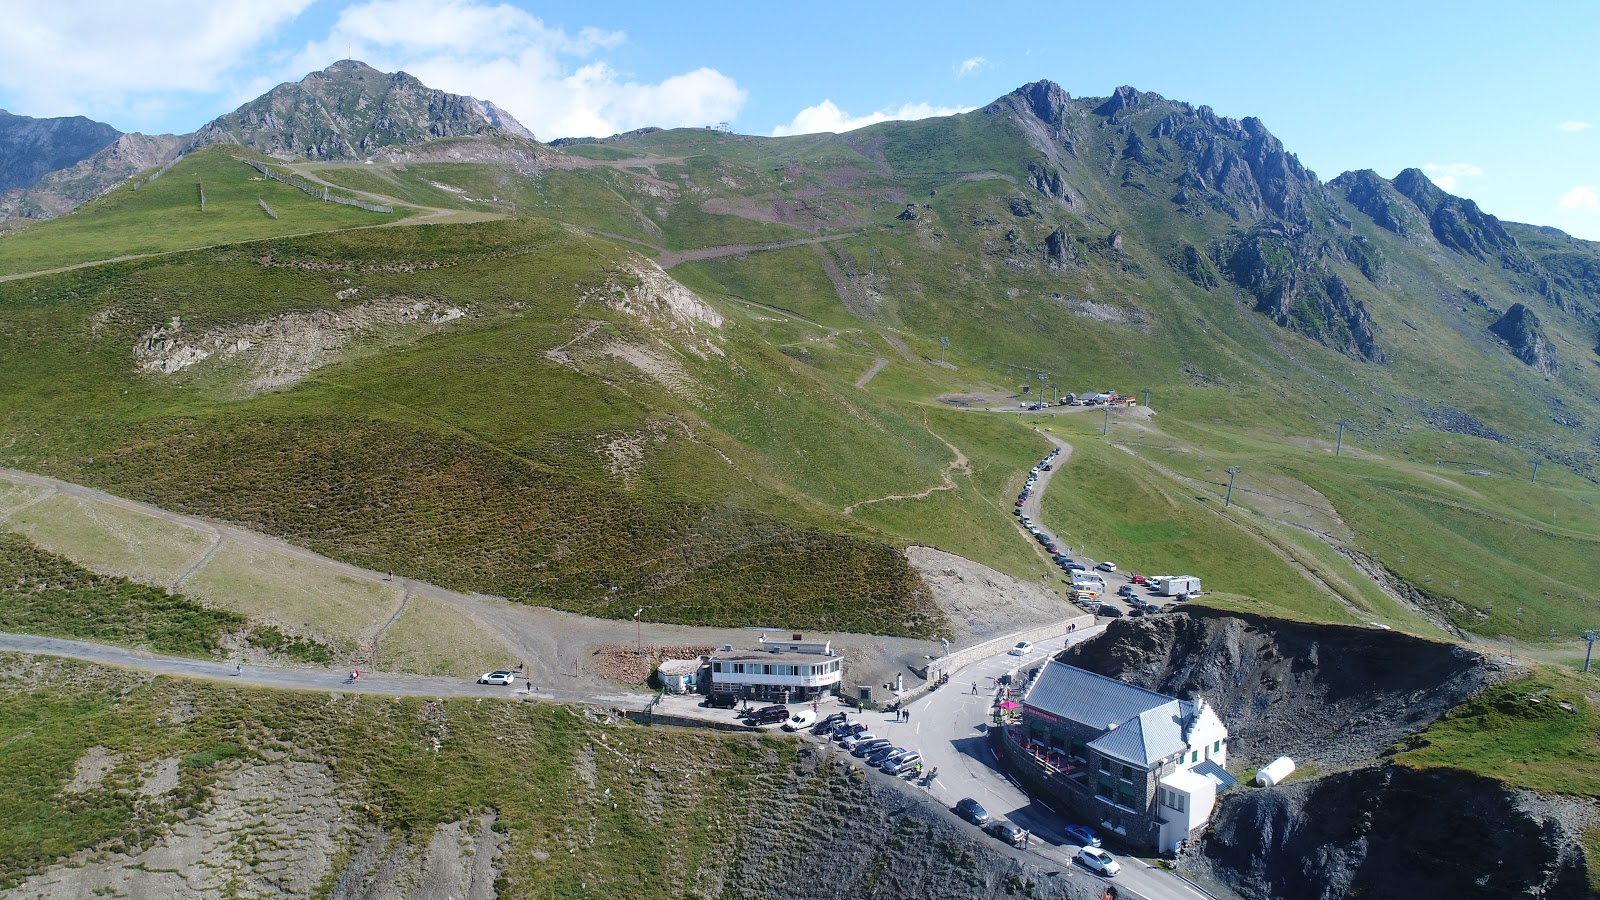 Climbing Col du Tourmalet by bike - drone aerial photo of col - cyclists, restaurant, statue, Le Géant, col sign